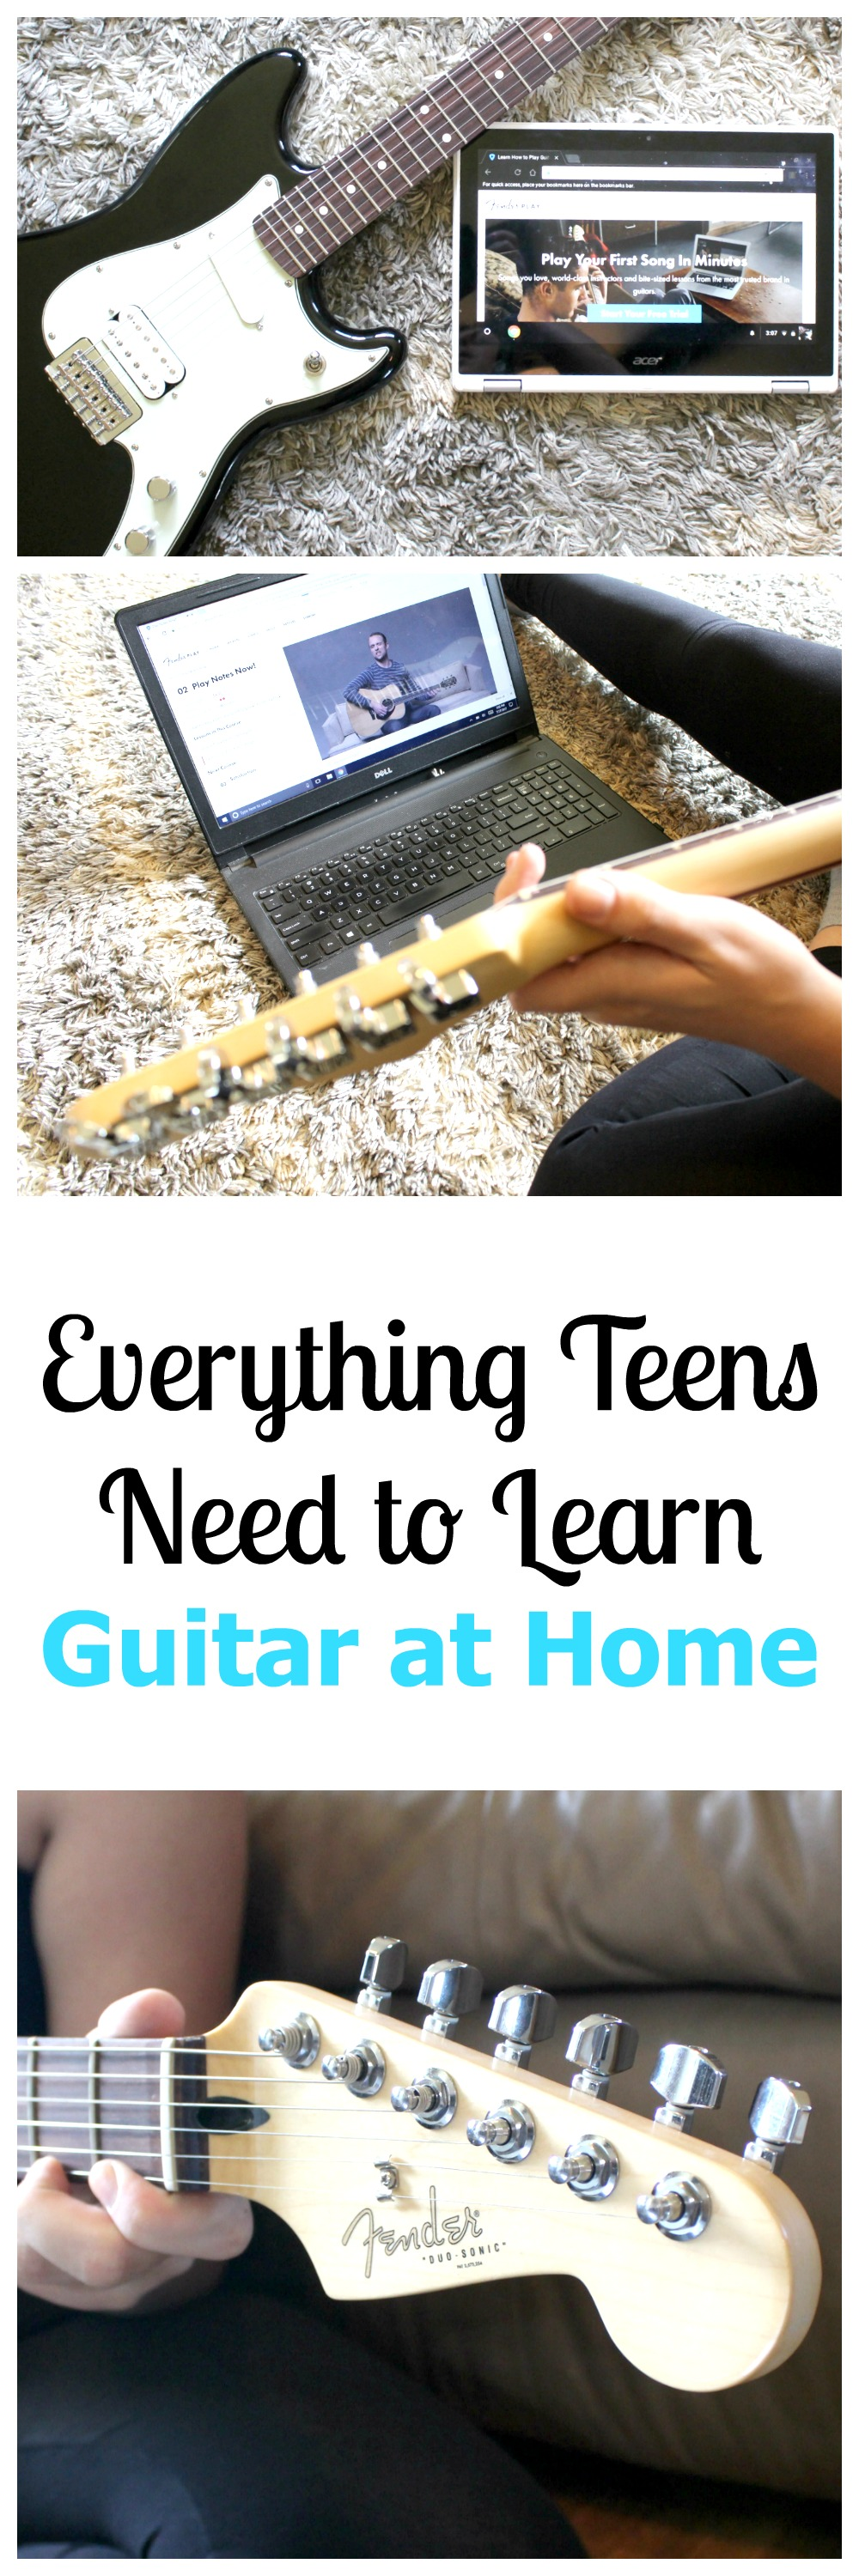 Teens Need to Learn Guitar at Home with Fender